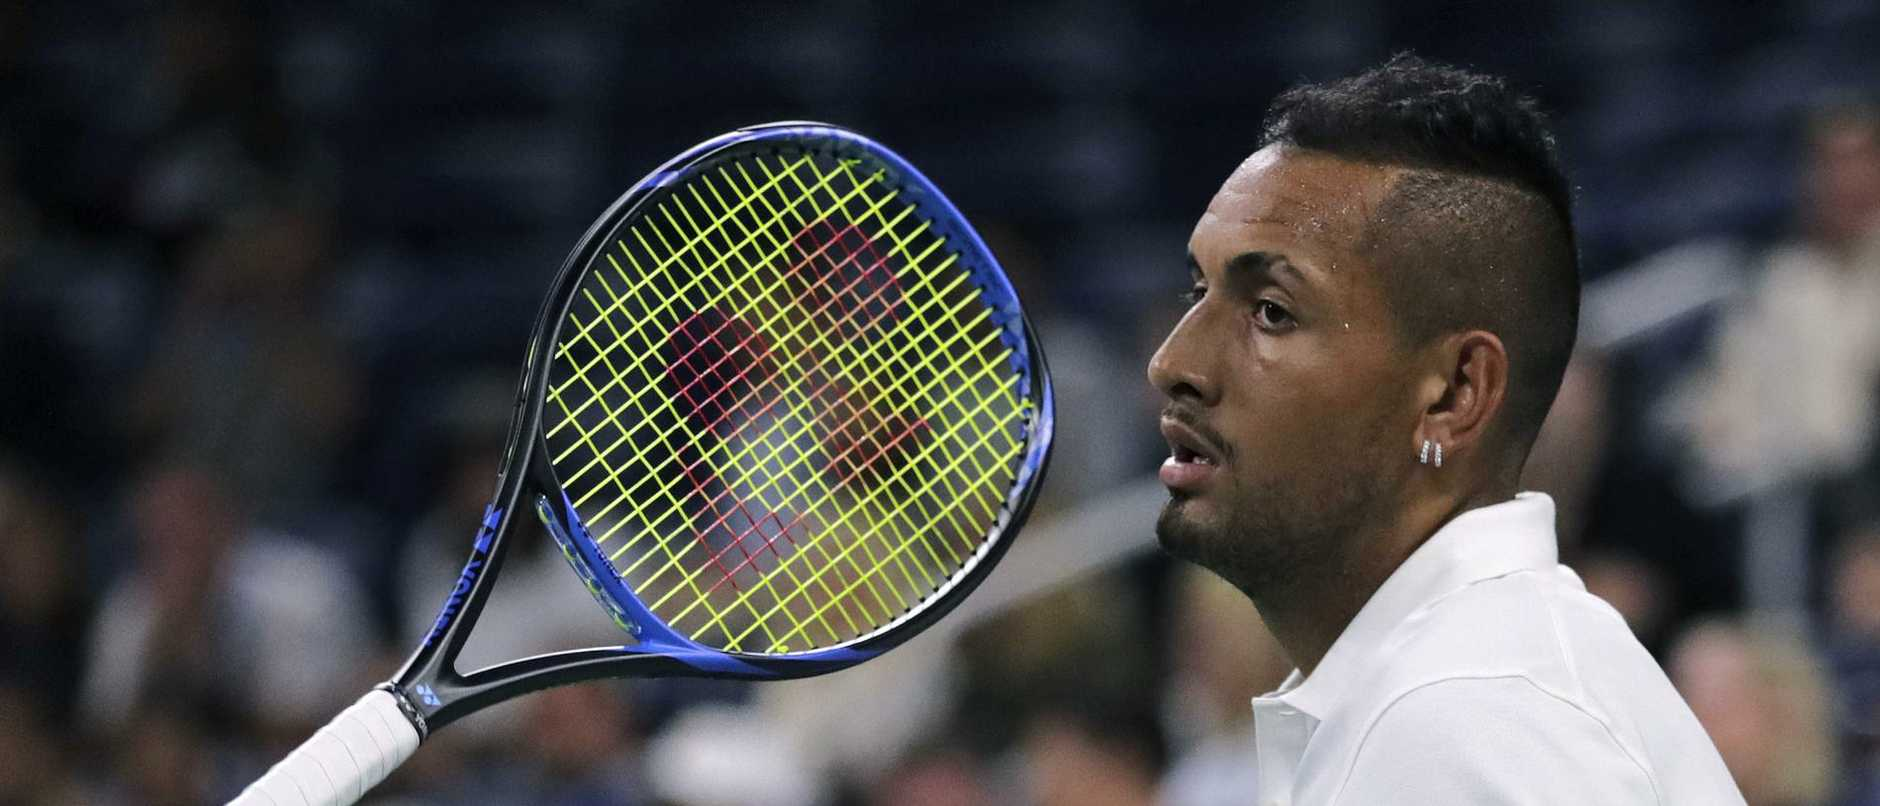 Kyrgios is yet to learn his fate.